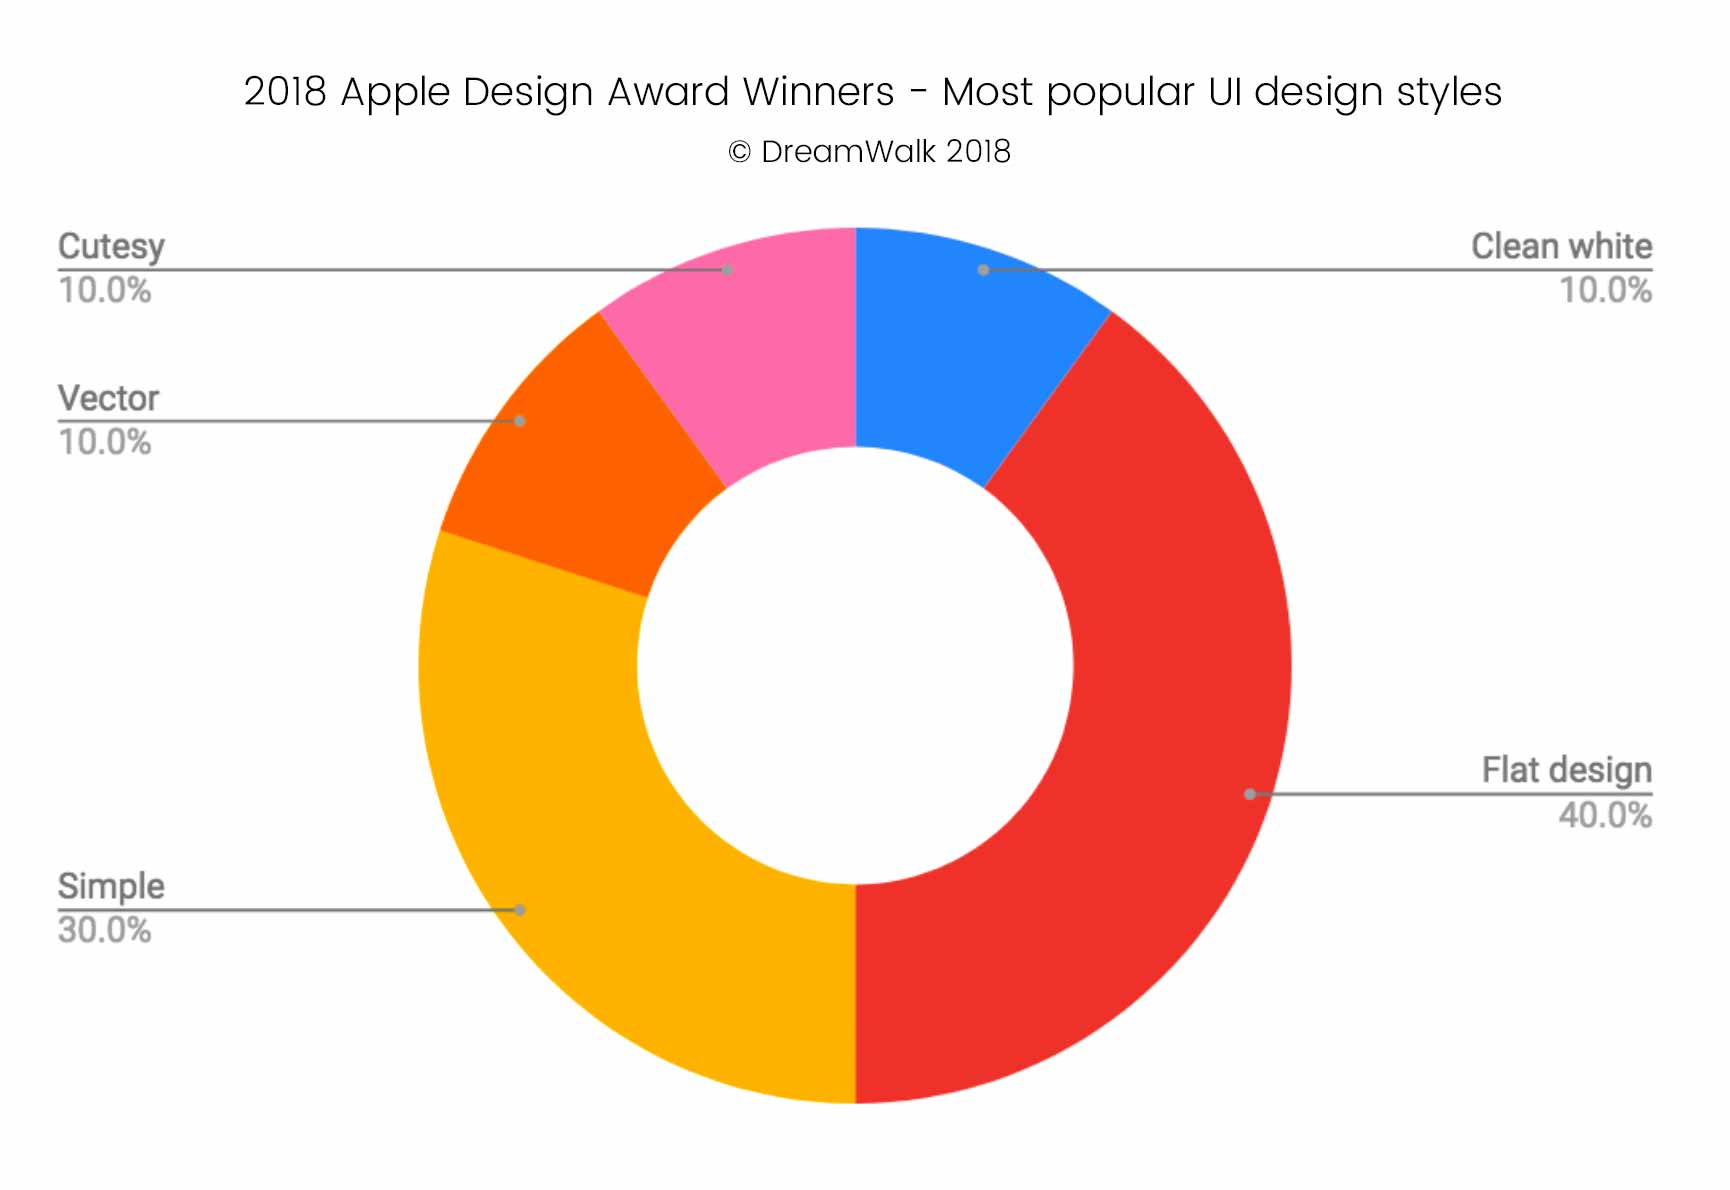 2018 Apple Design Award Winners - Most popular UI design styles